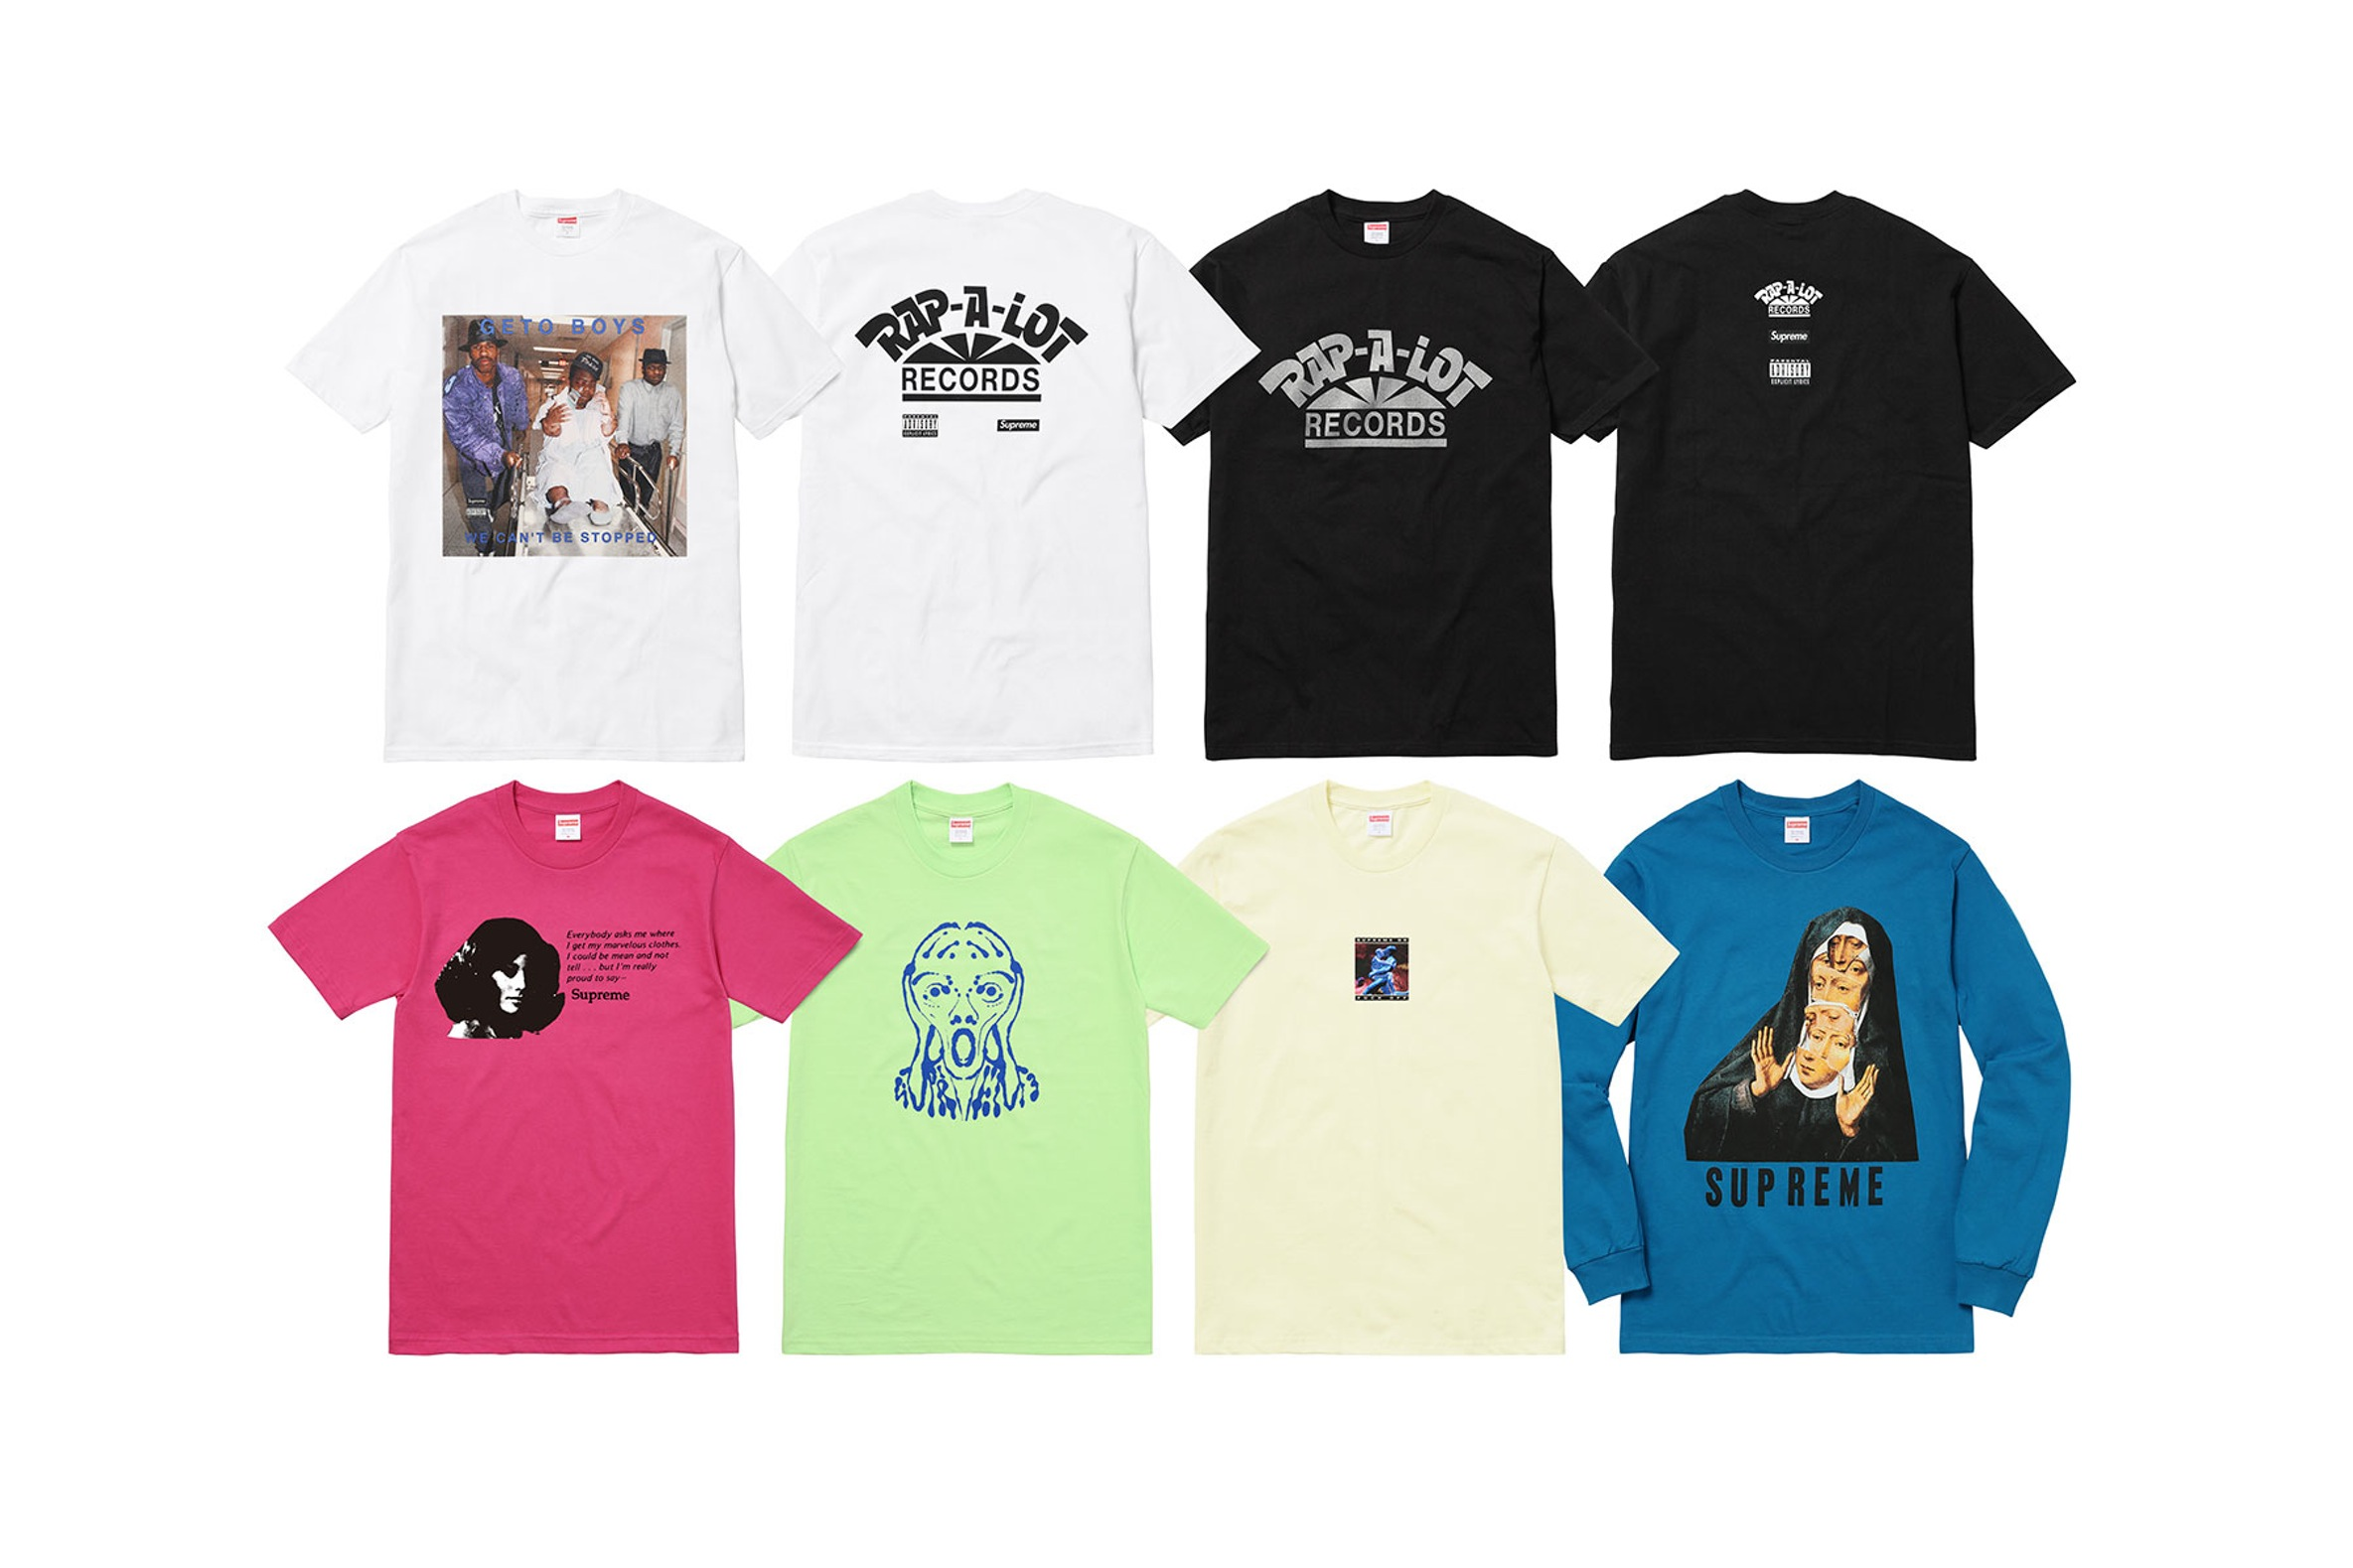 http---hypebeast.com-image-2017-04-supreme-rap-a-lot-records-2017-spring-summer-collection-14